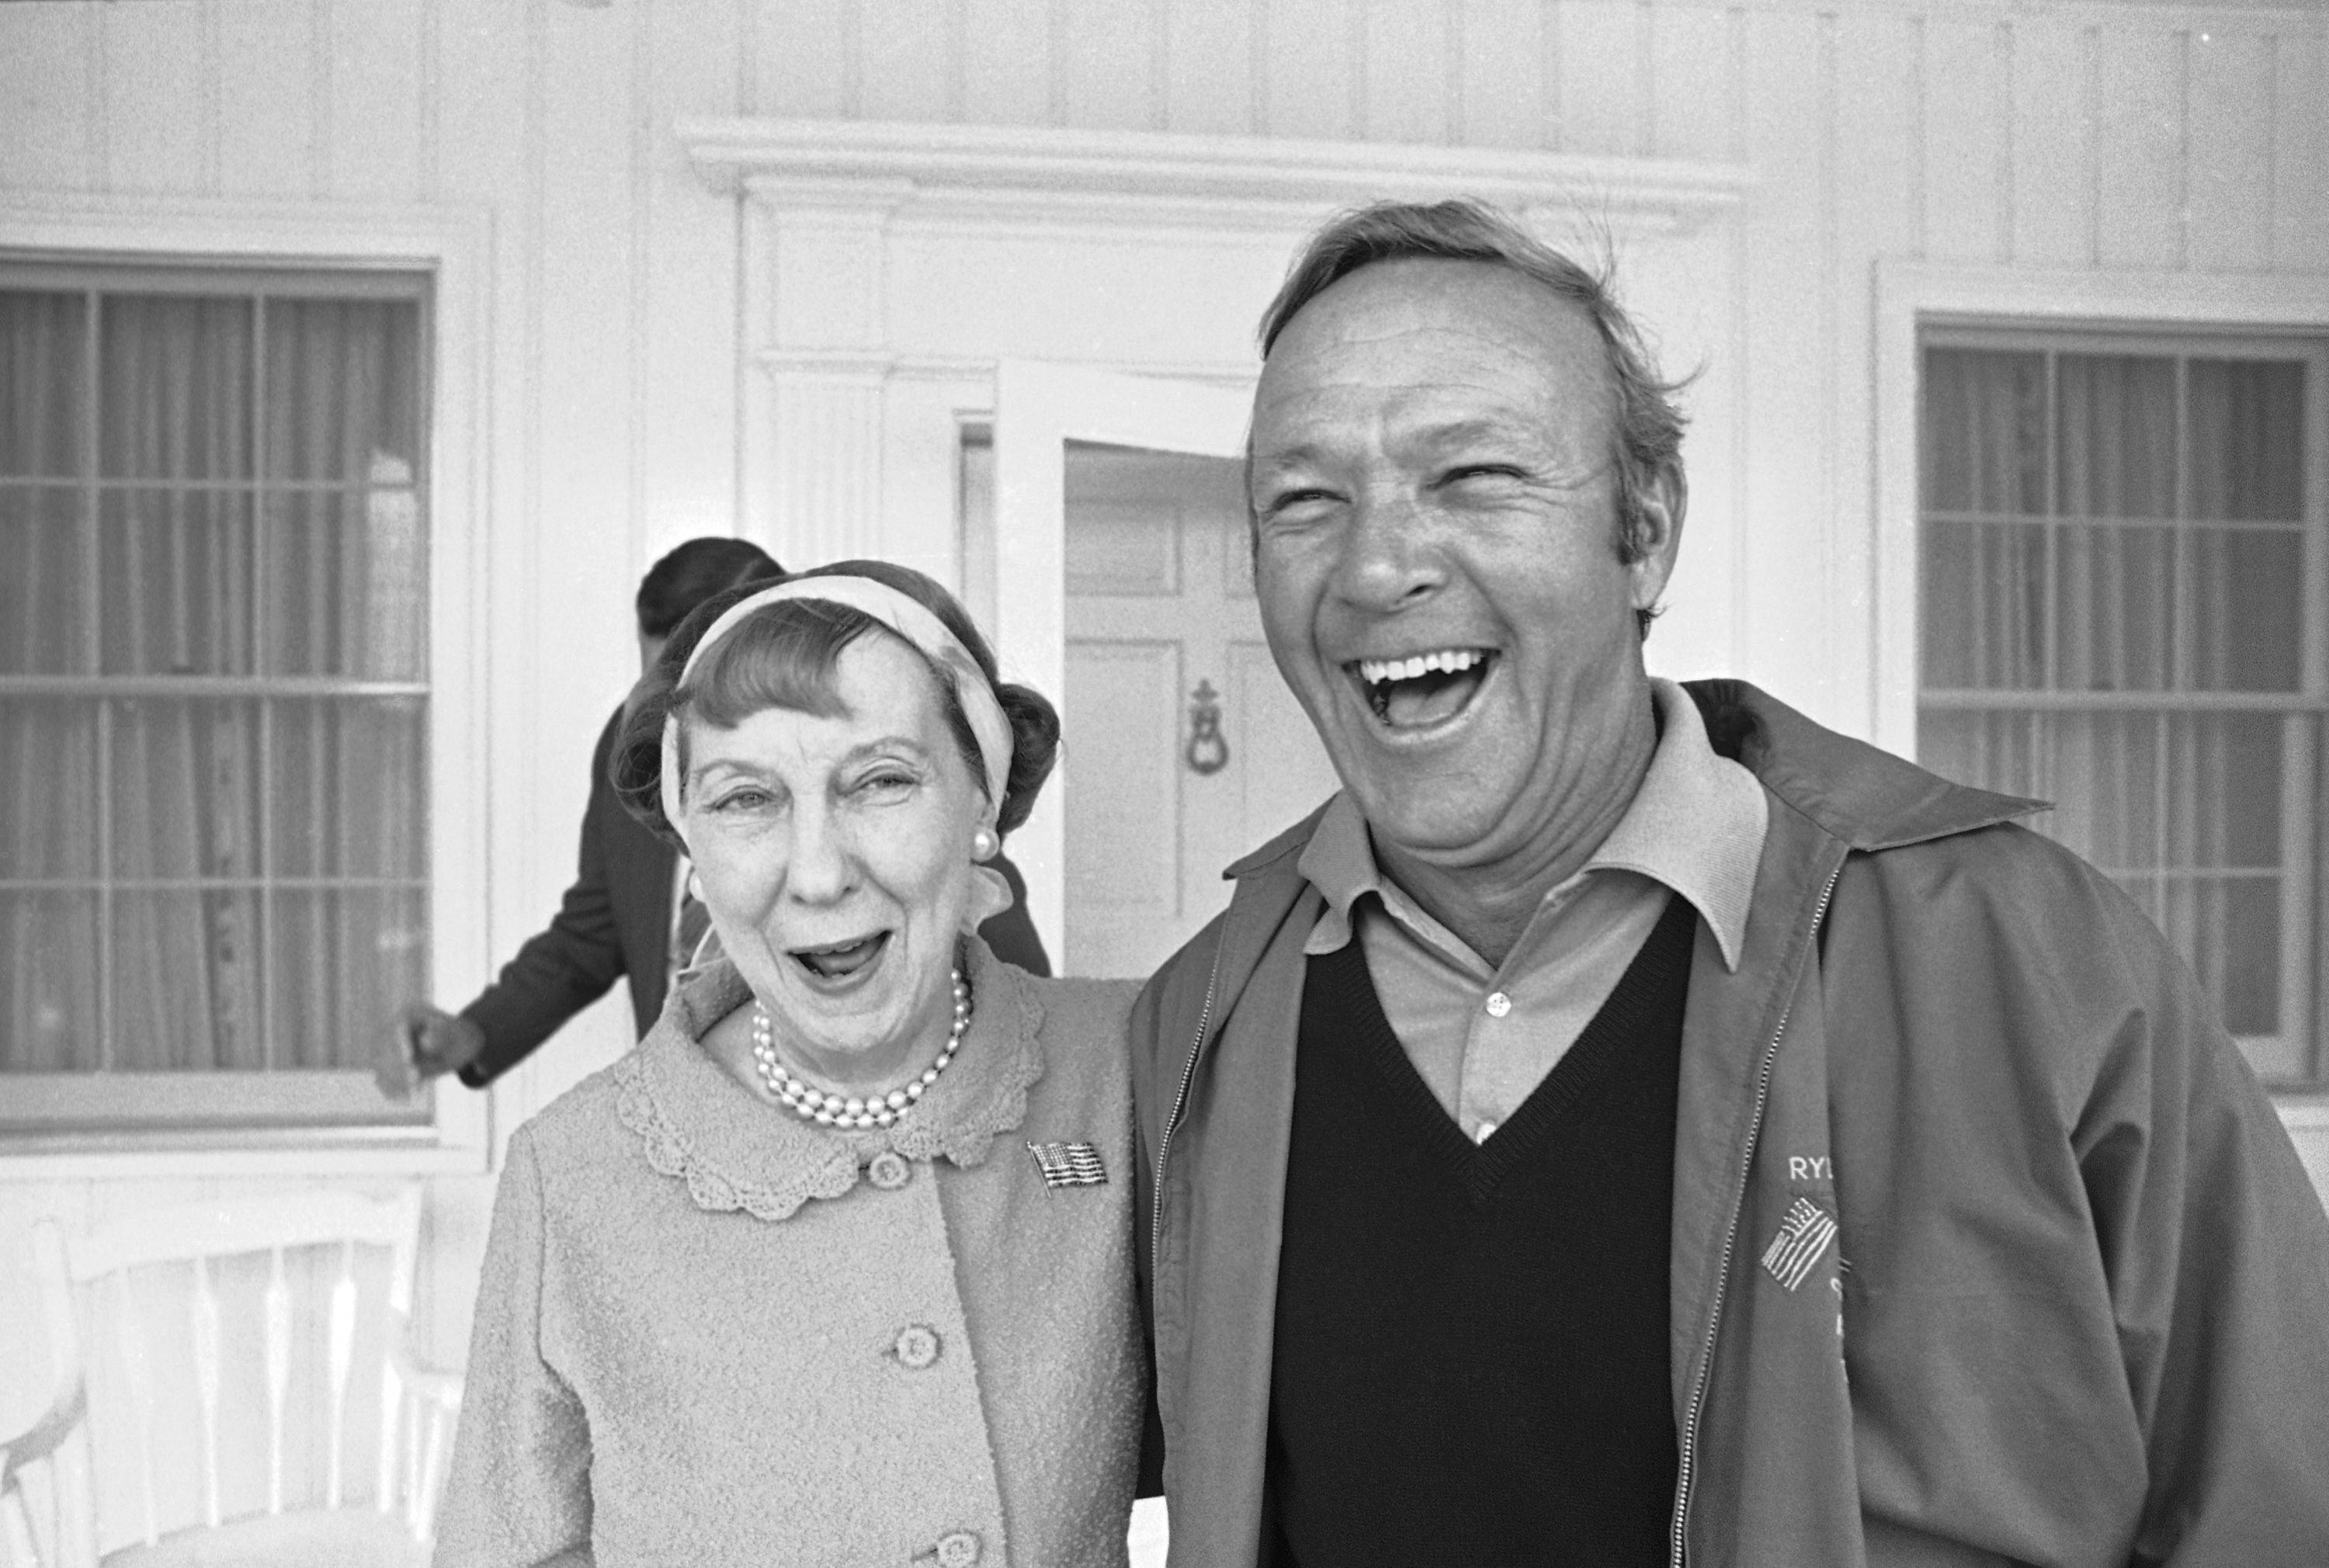 Arnold Palmer paid a visit to Mrs. Mamie Eisenhower just before practice at the Augusta National Golf Club on April 4, 1972 in Augusta.    Mrs. Eisenhower told Palmer to do his best and wished him luck.